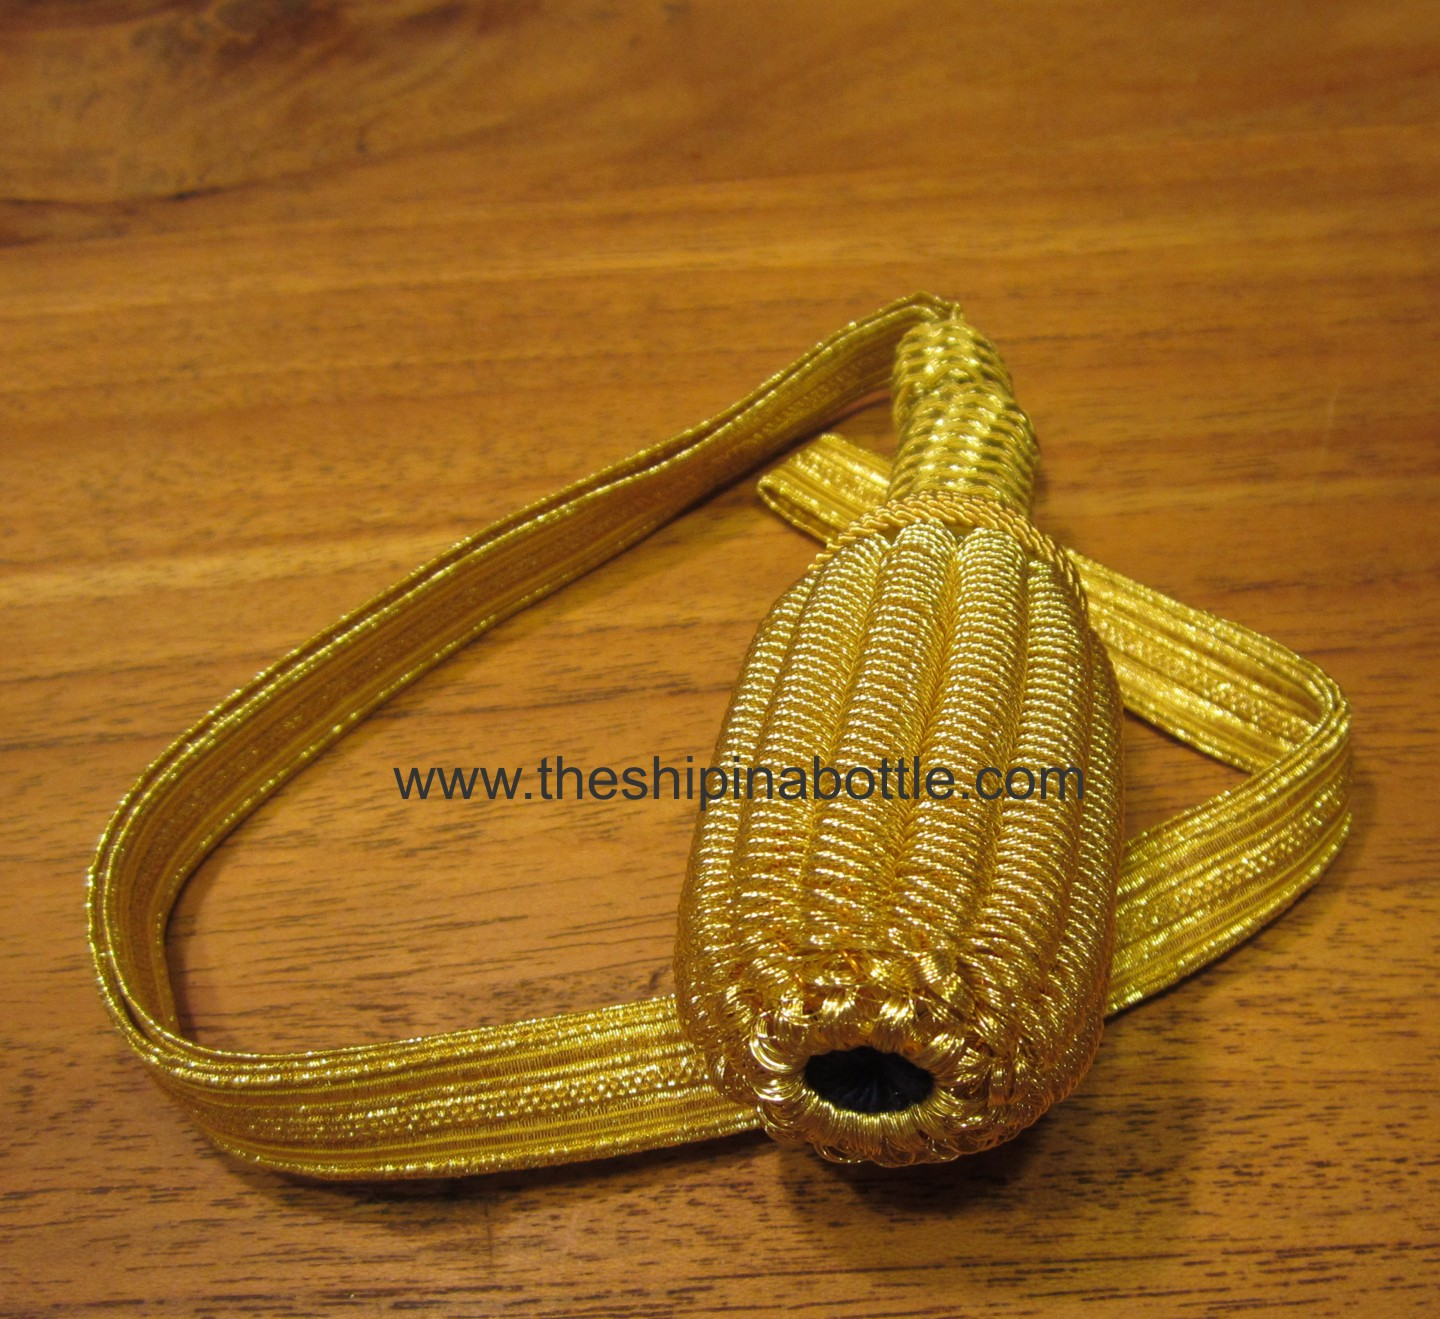 Vanguard's Navy Officer Sword Knot